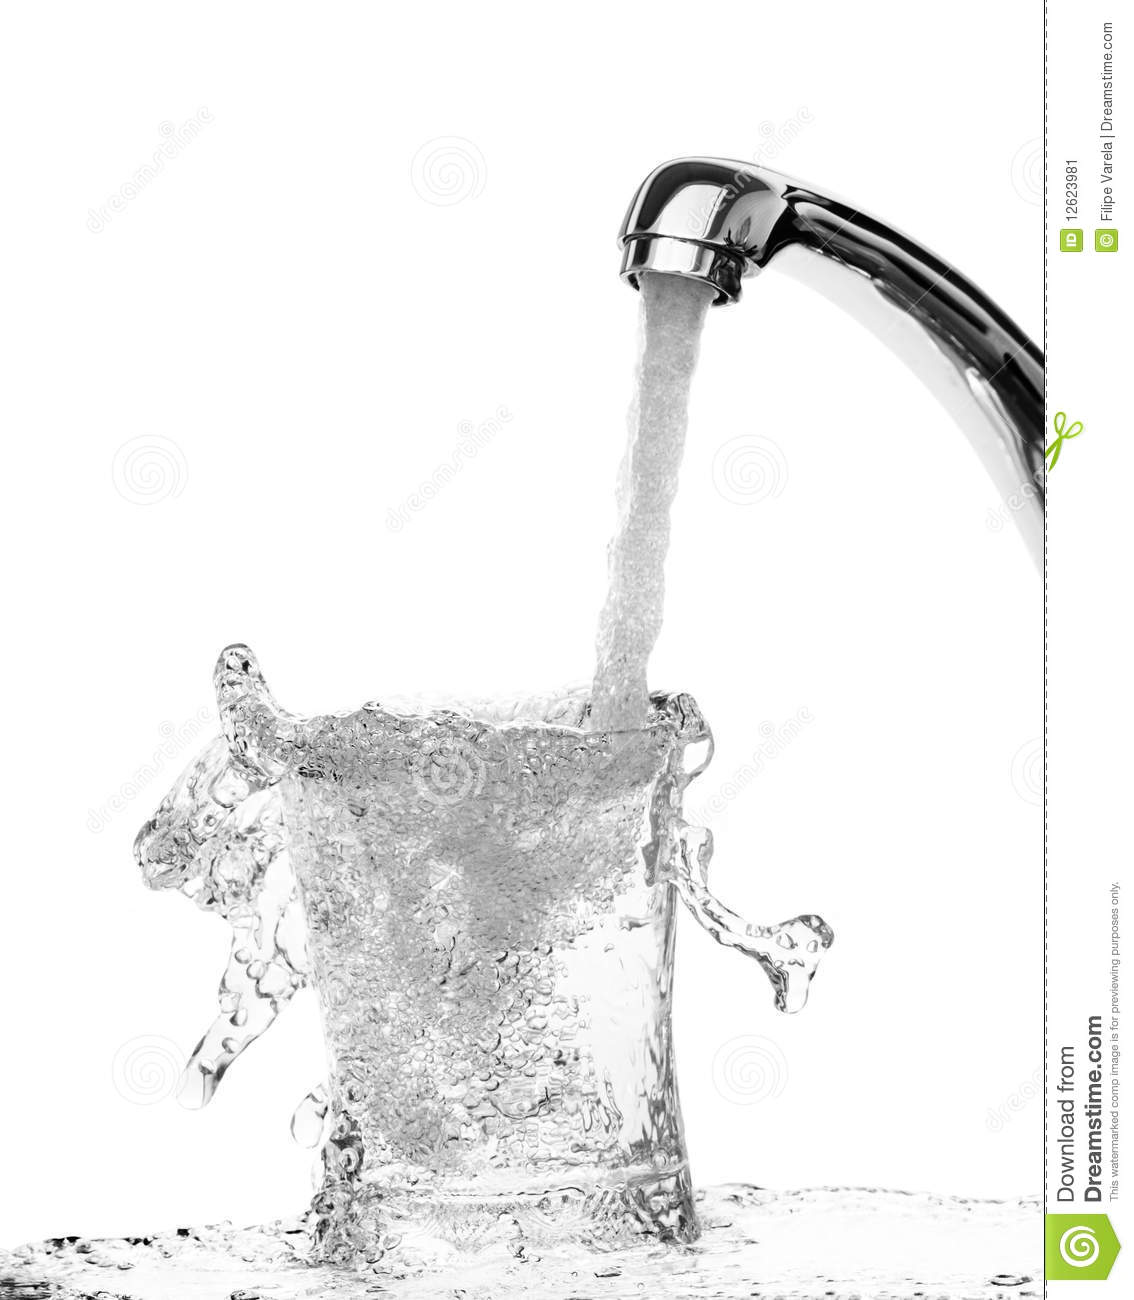 running water into a glass stock image  image of drinking